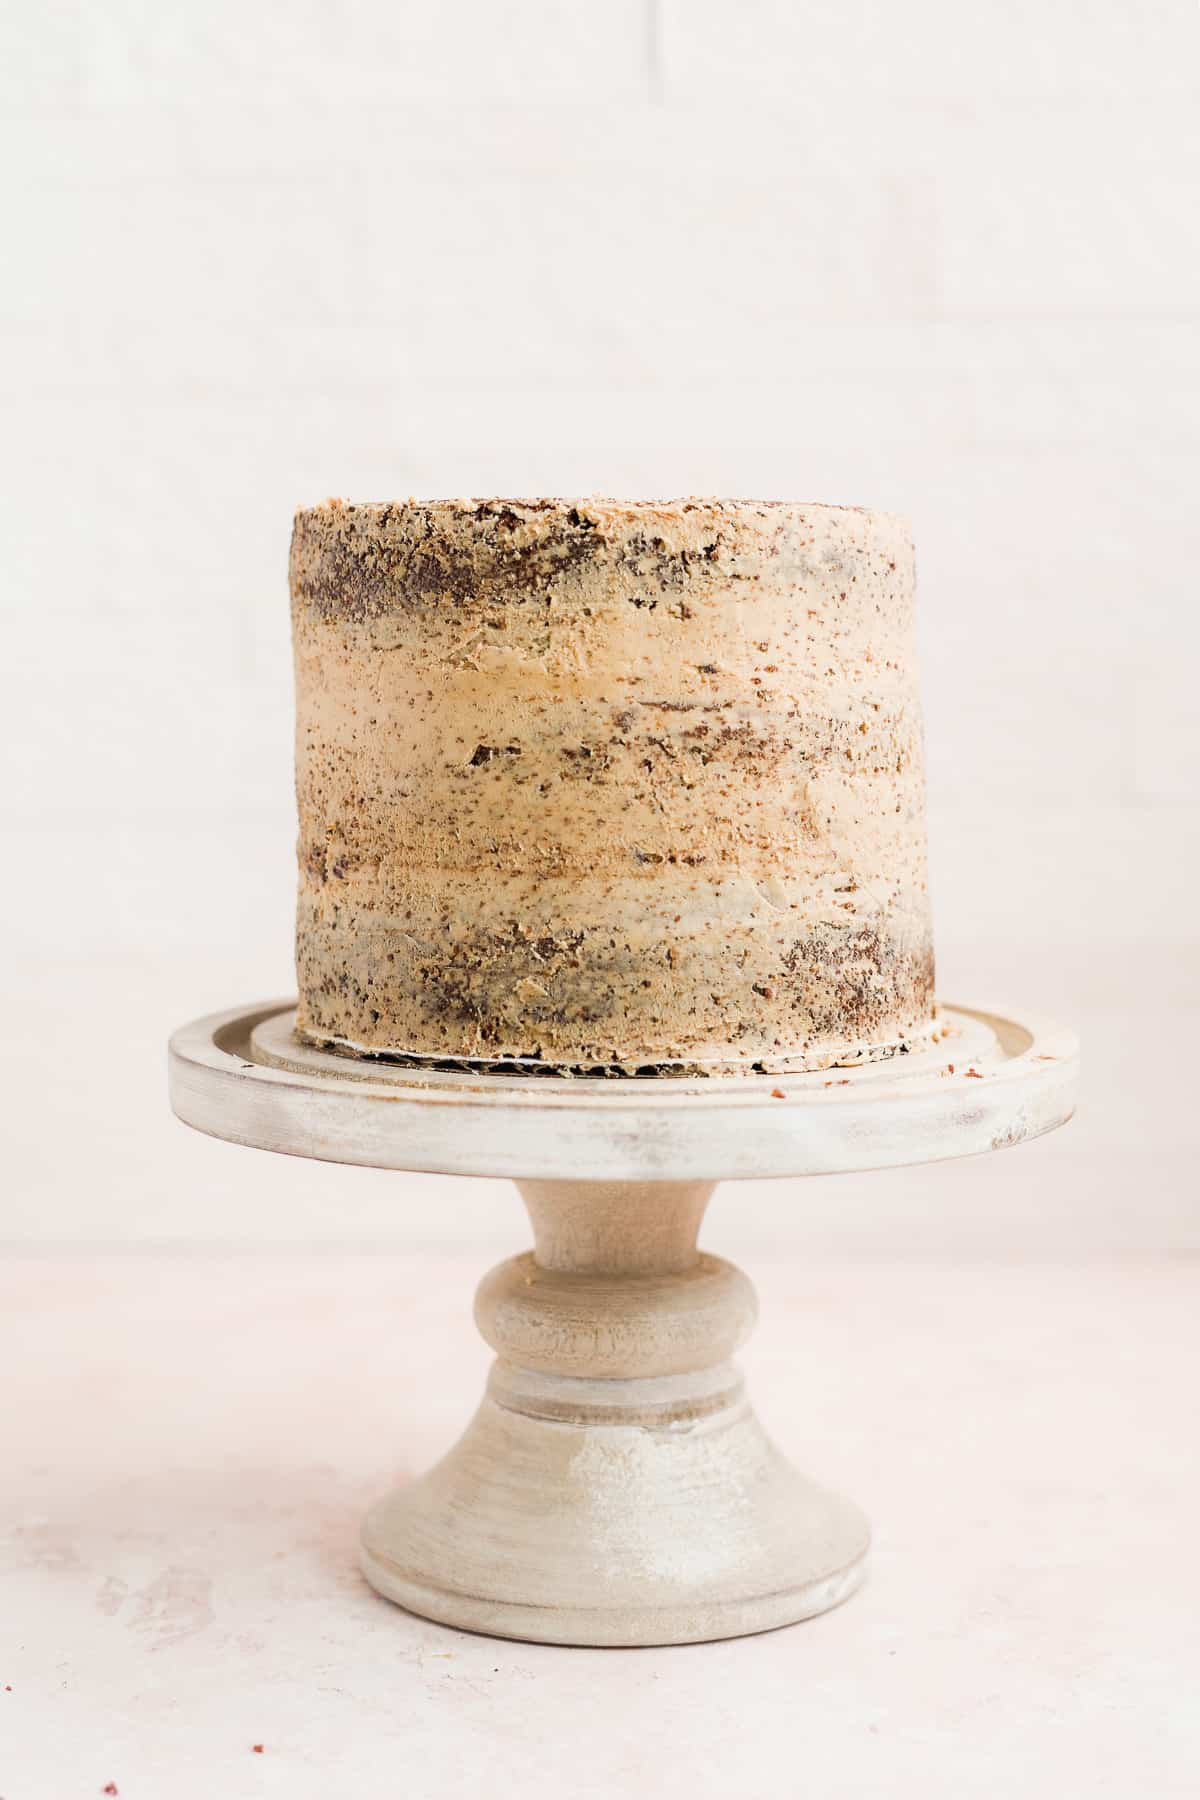 Cake on a stand with crumb coat on a pink surface.